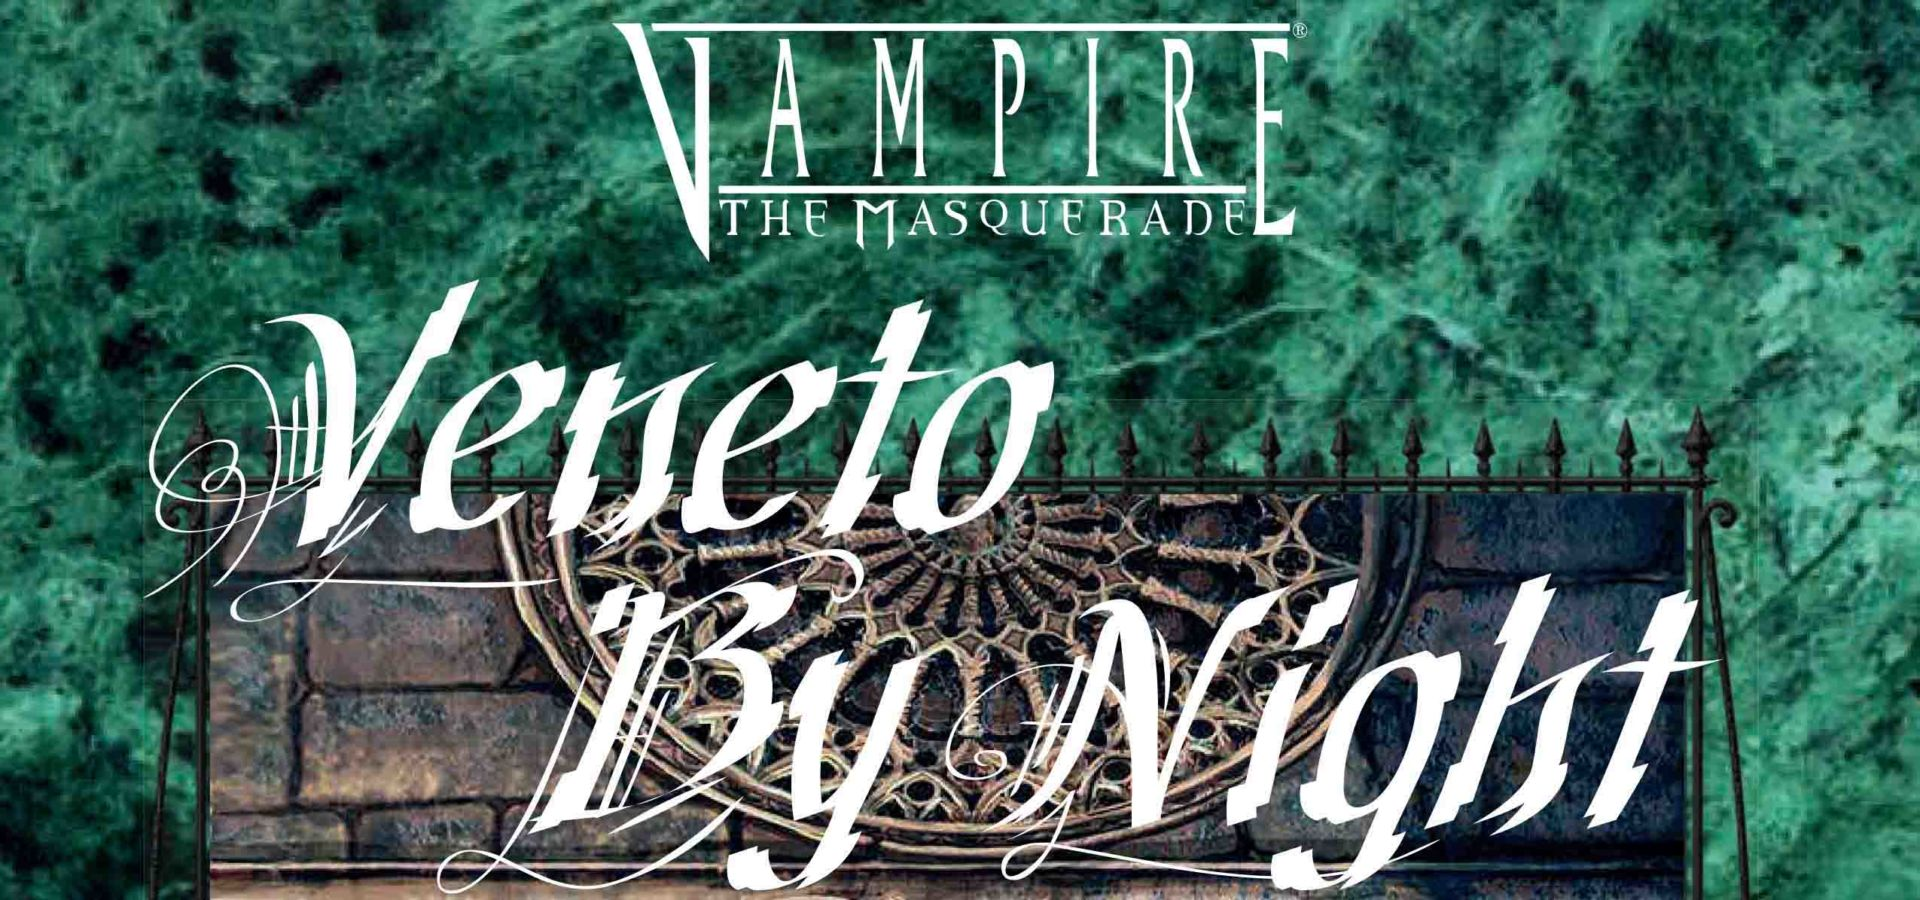 Vampiri: la Masquerade - Veneto by Night